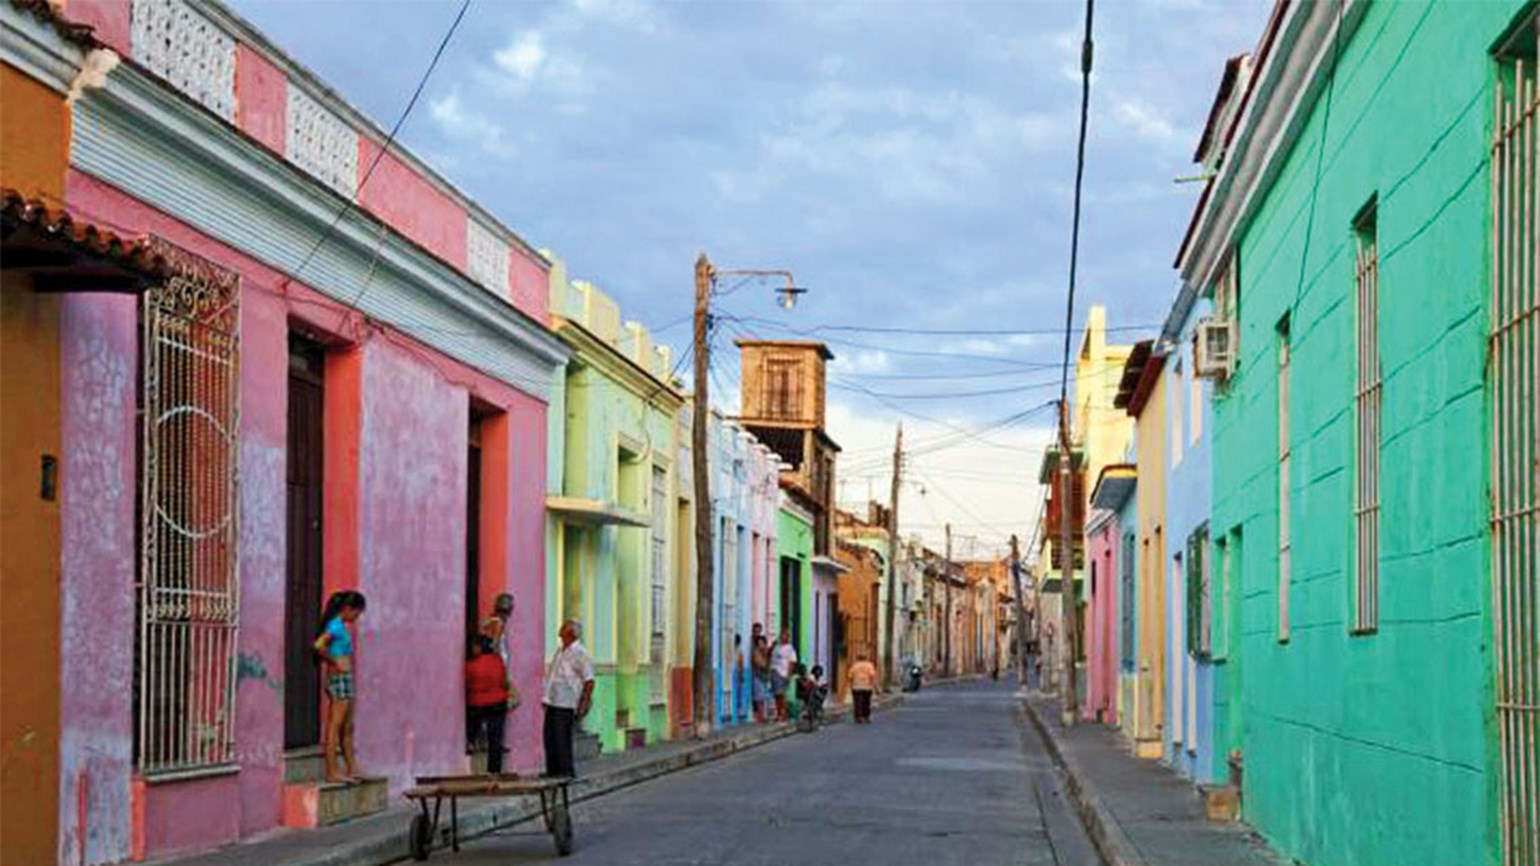 Silver Airways sees potential gold mine in Cuba